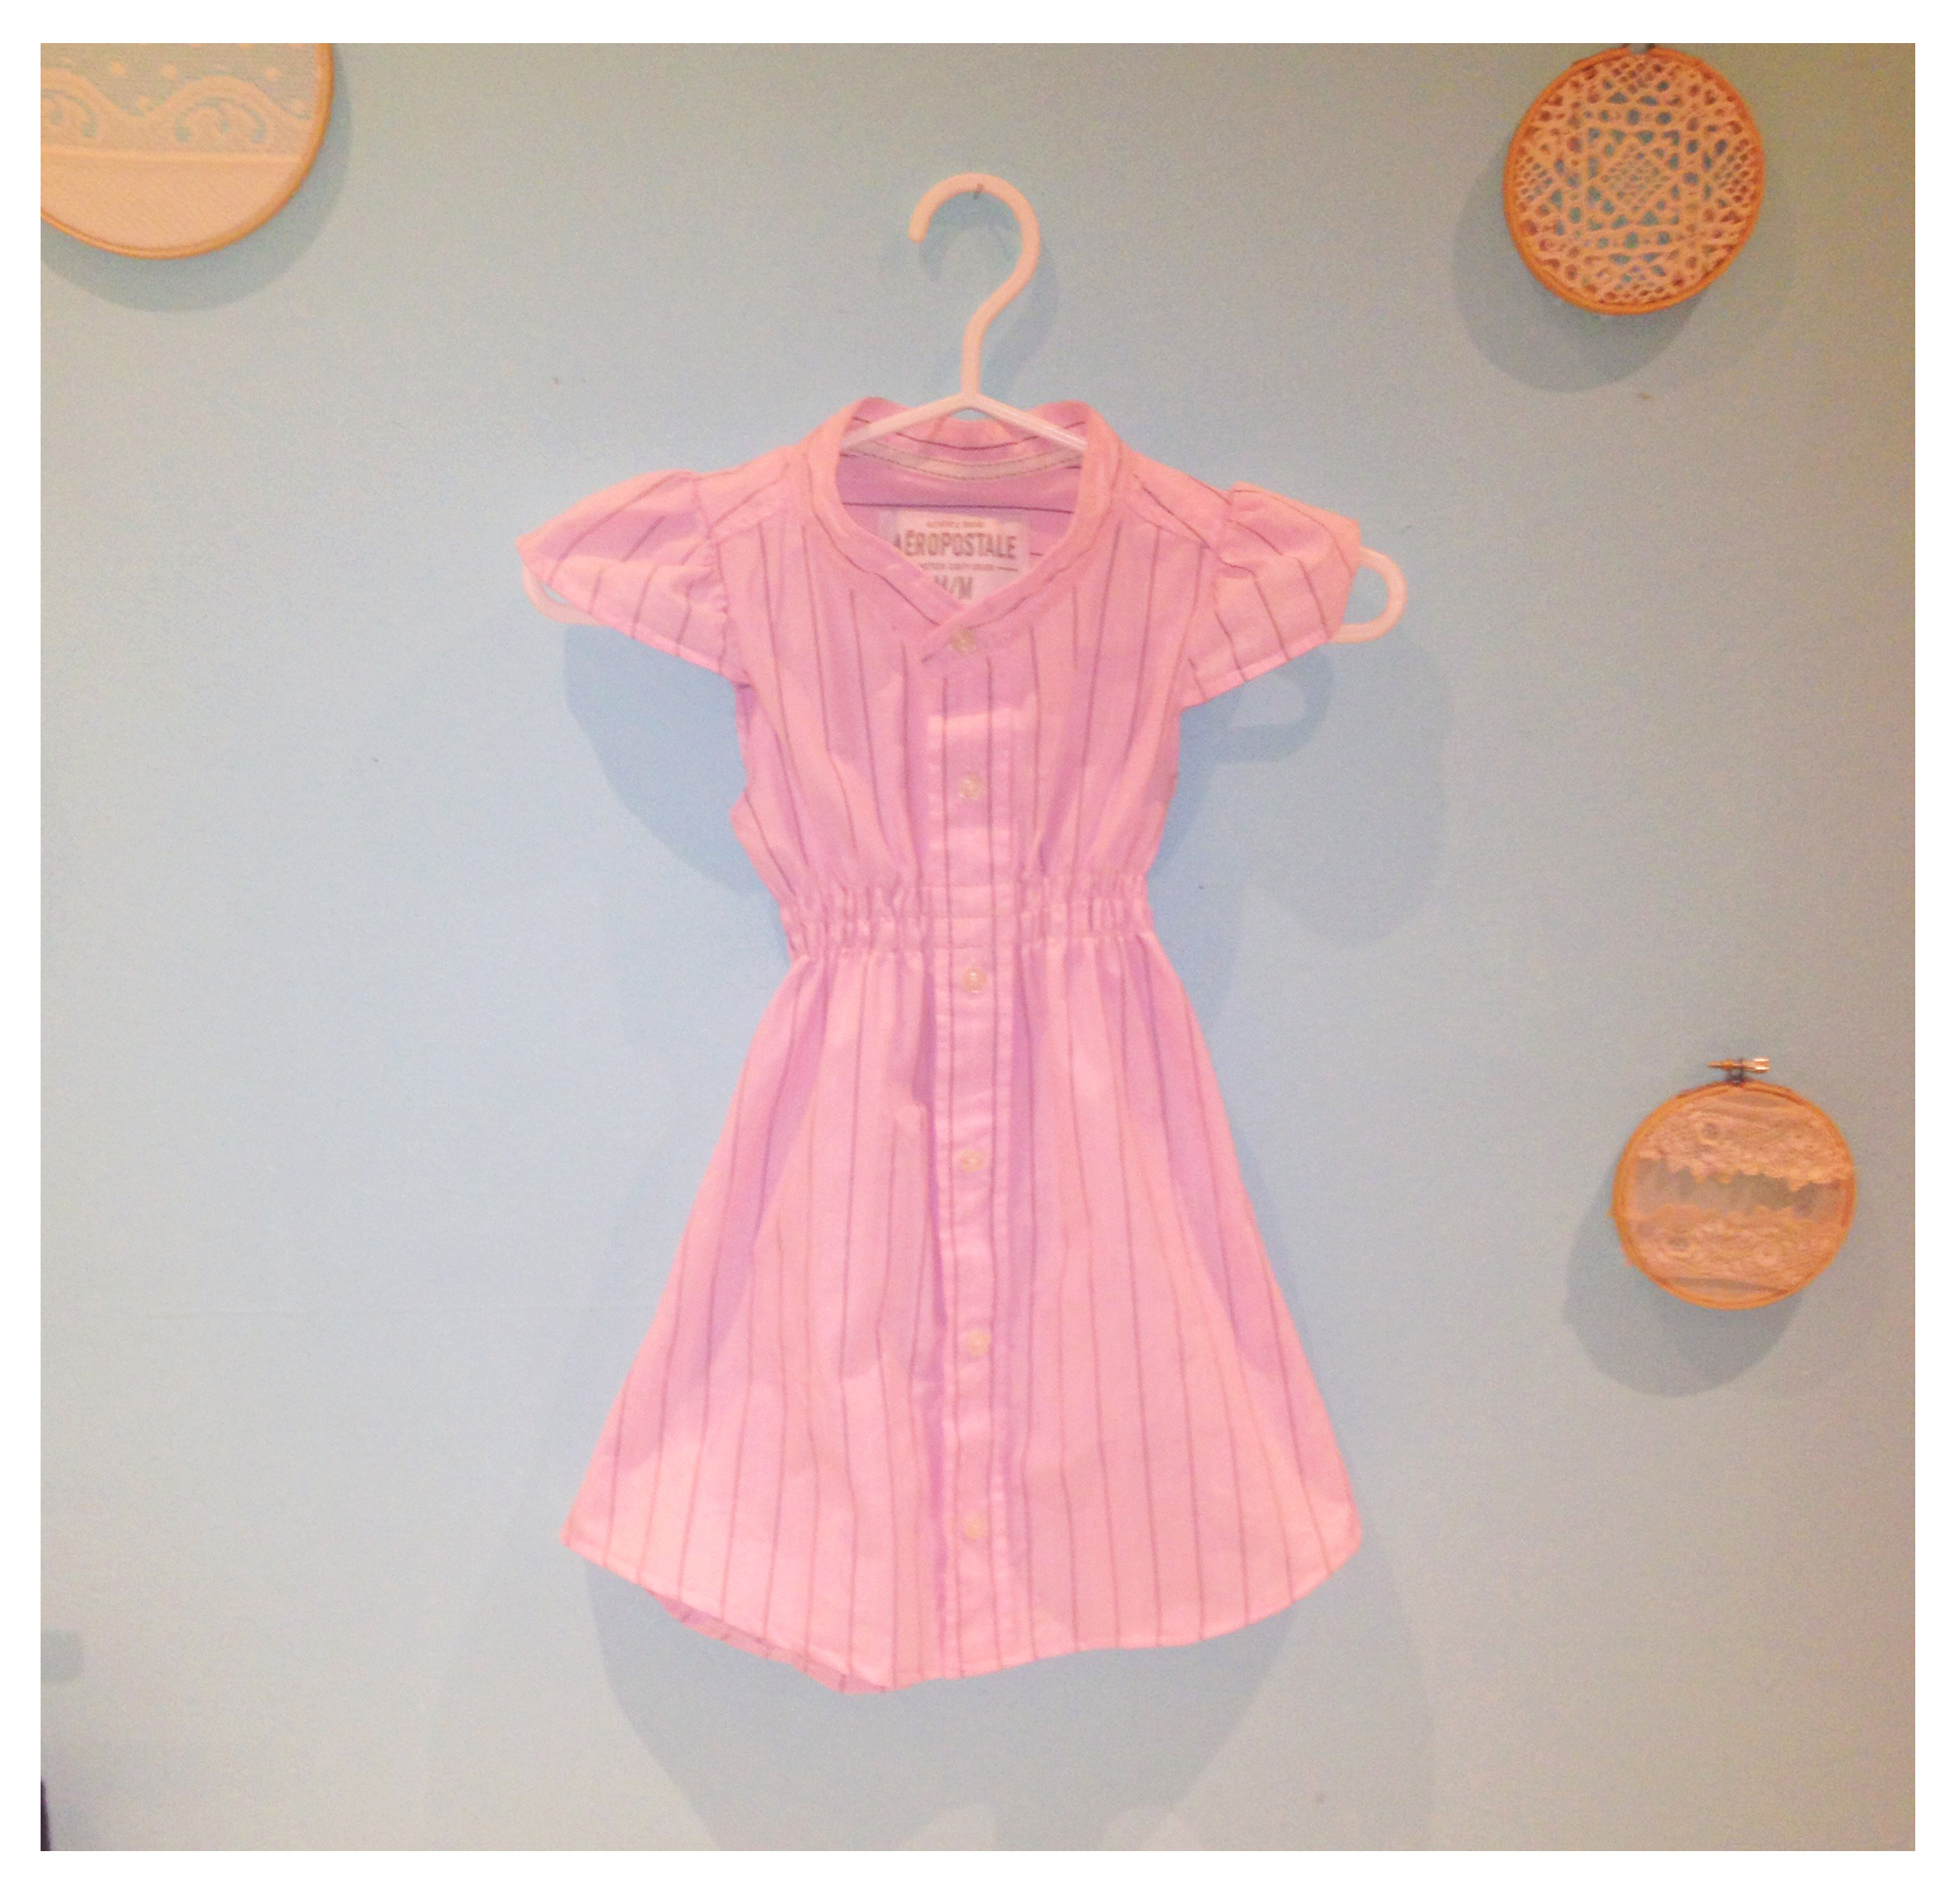 14ddcc453f5c This upcycled children's dress was made from a mens dress shirt. With  shirring added to cinch the waist, the entire project was completed in a  matter of ...